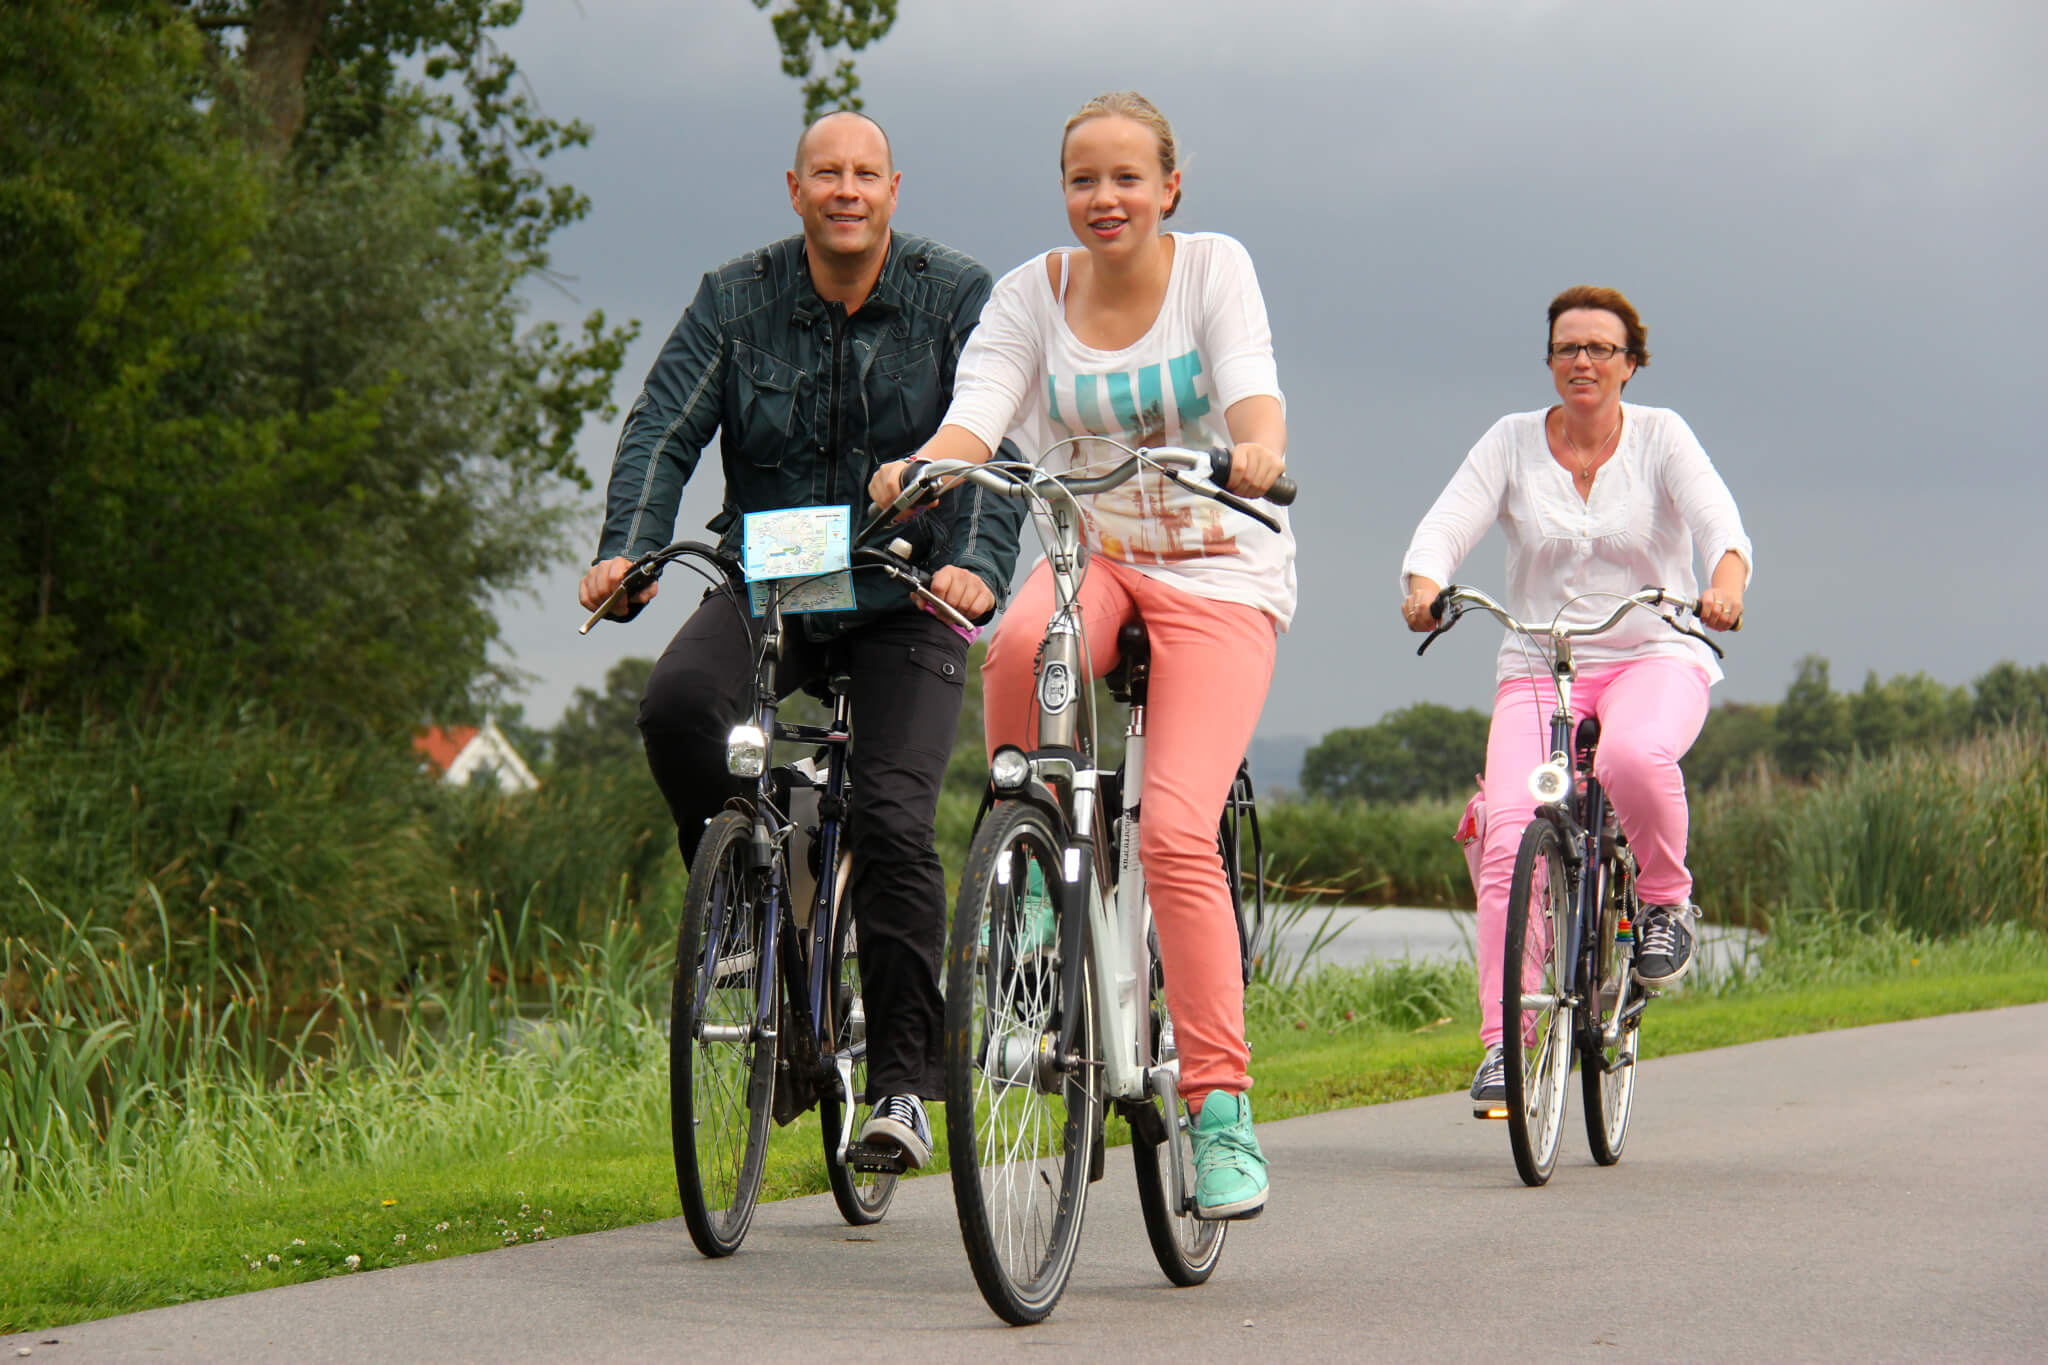 Village Tour, the bike tour through Aalsmeer and surroundings